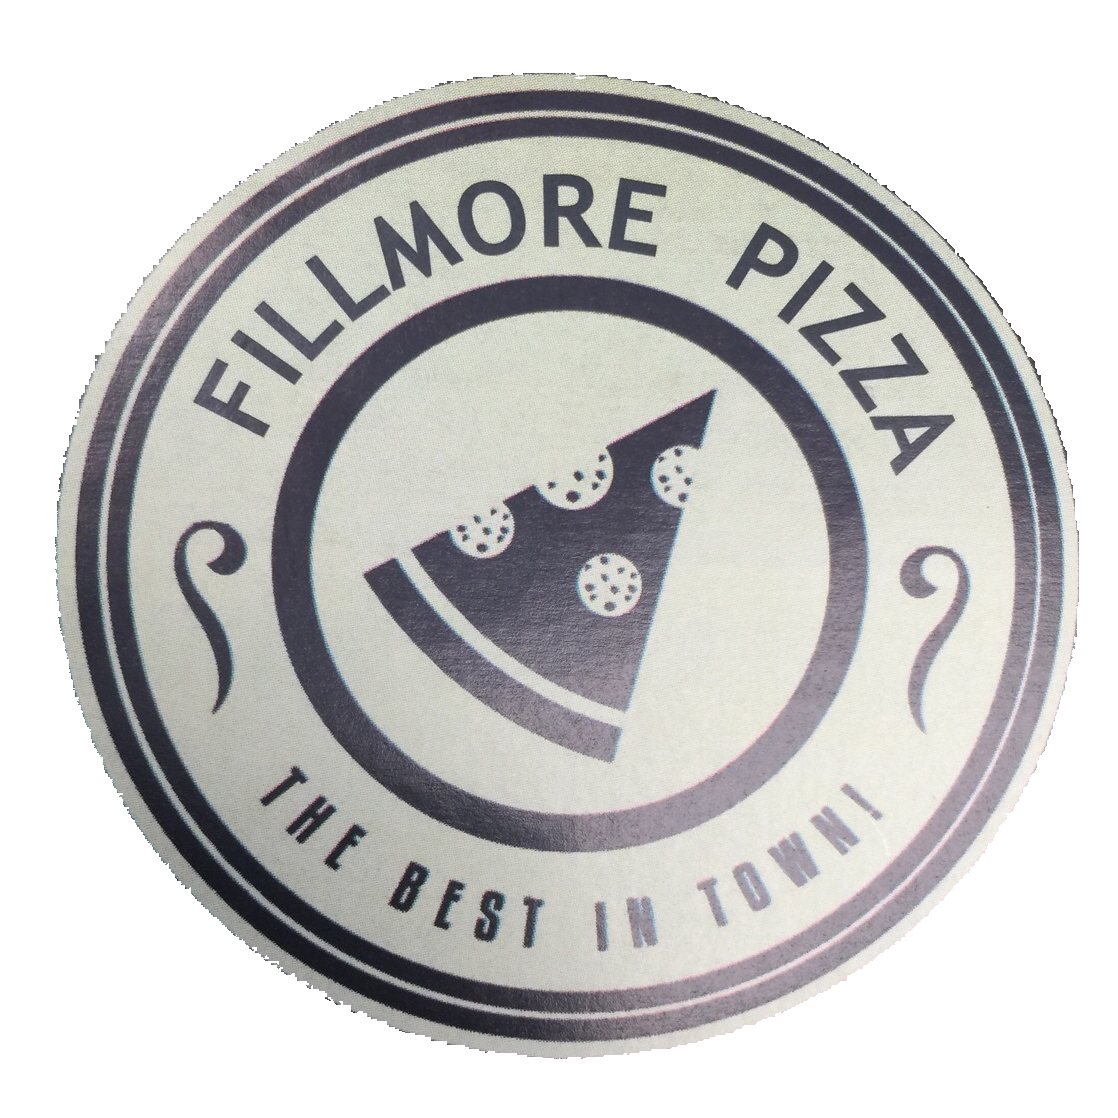 Fillmore Pizza image 5